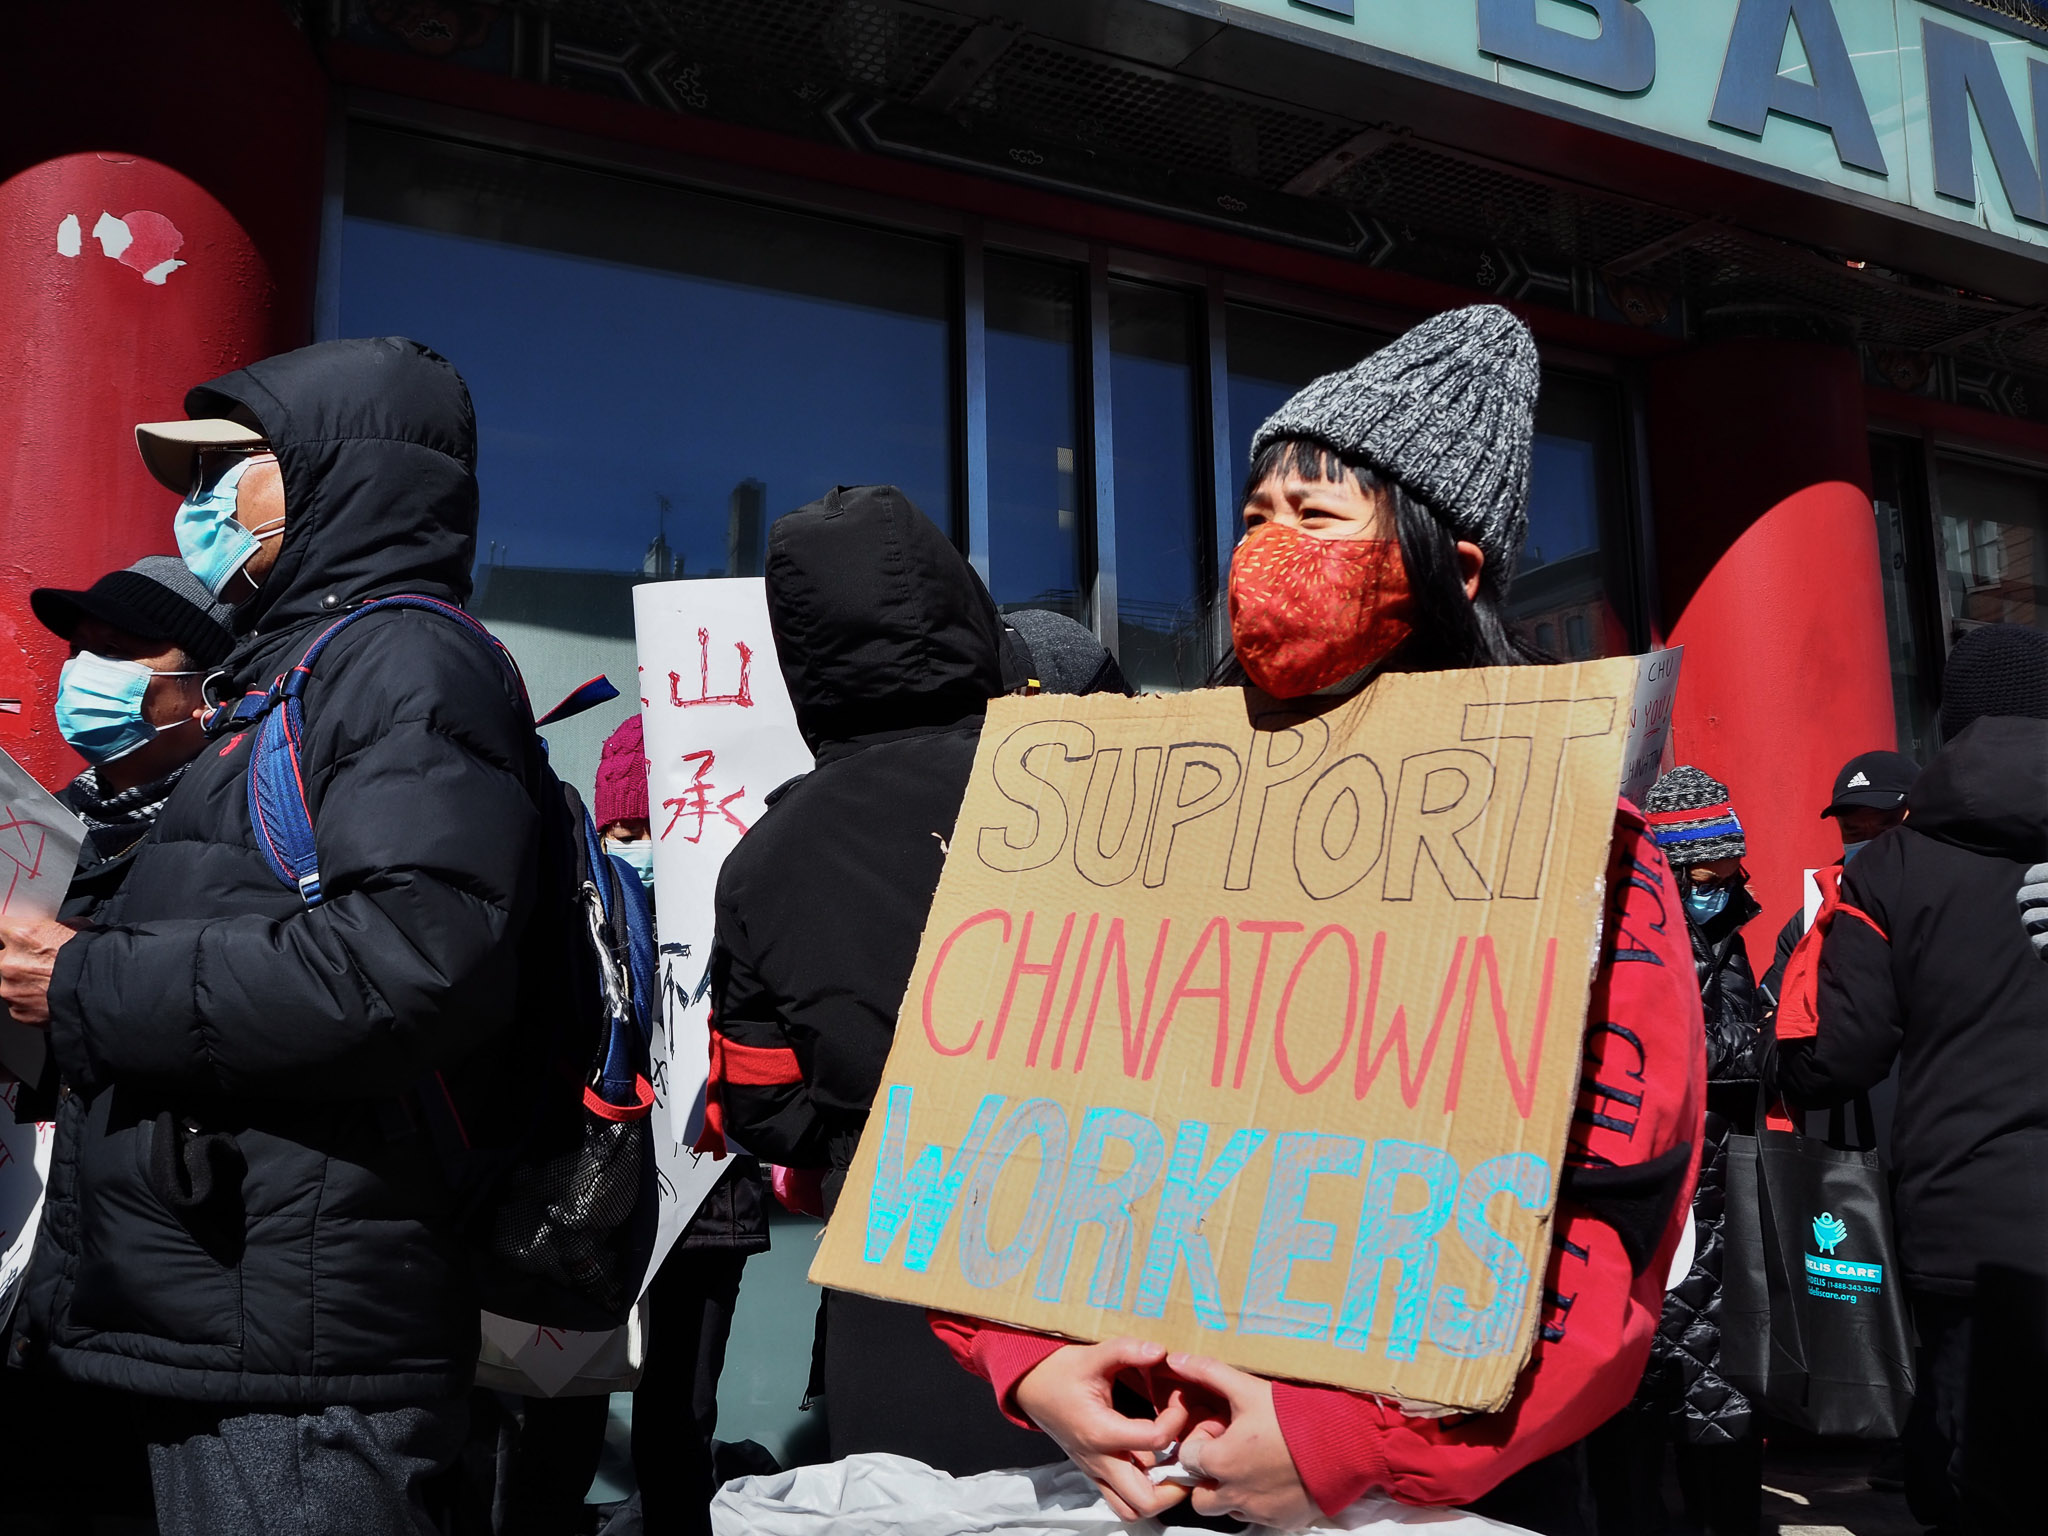 Workers and their supporters protest the impending closure of Chinatown's Jing Fong restaurant dining room outside its landlord East Bank. Photo: Amir Khafagy for Documented